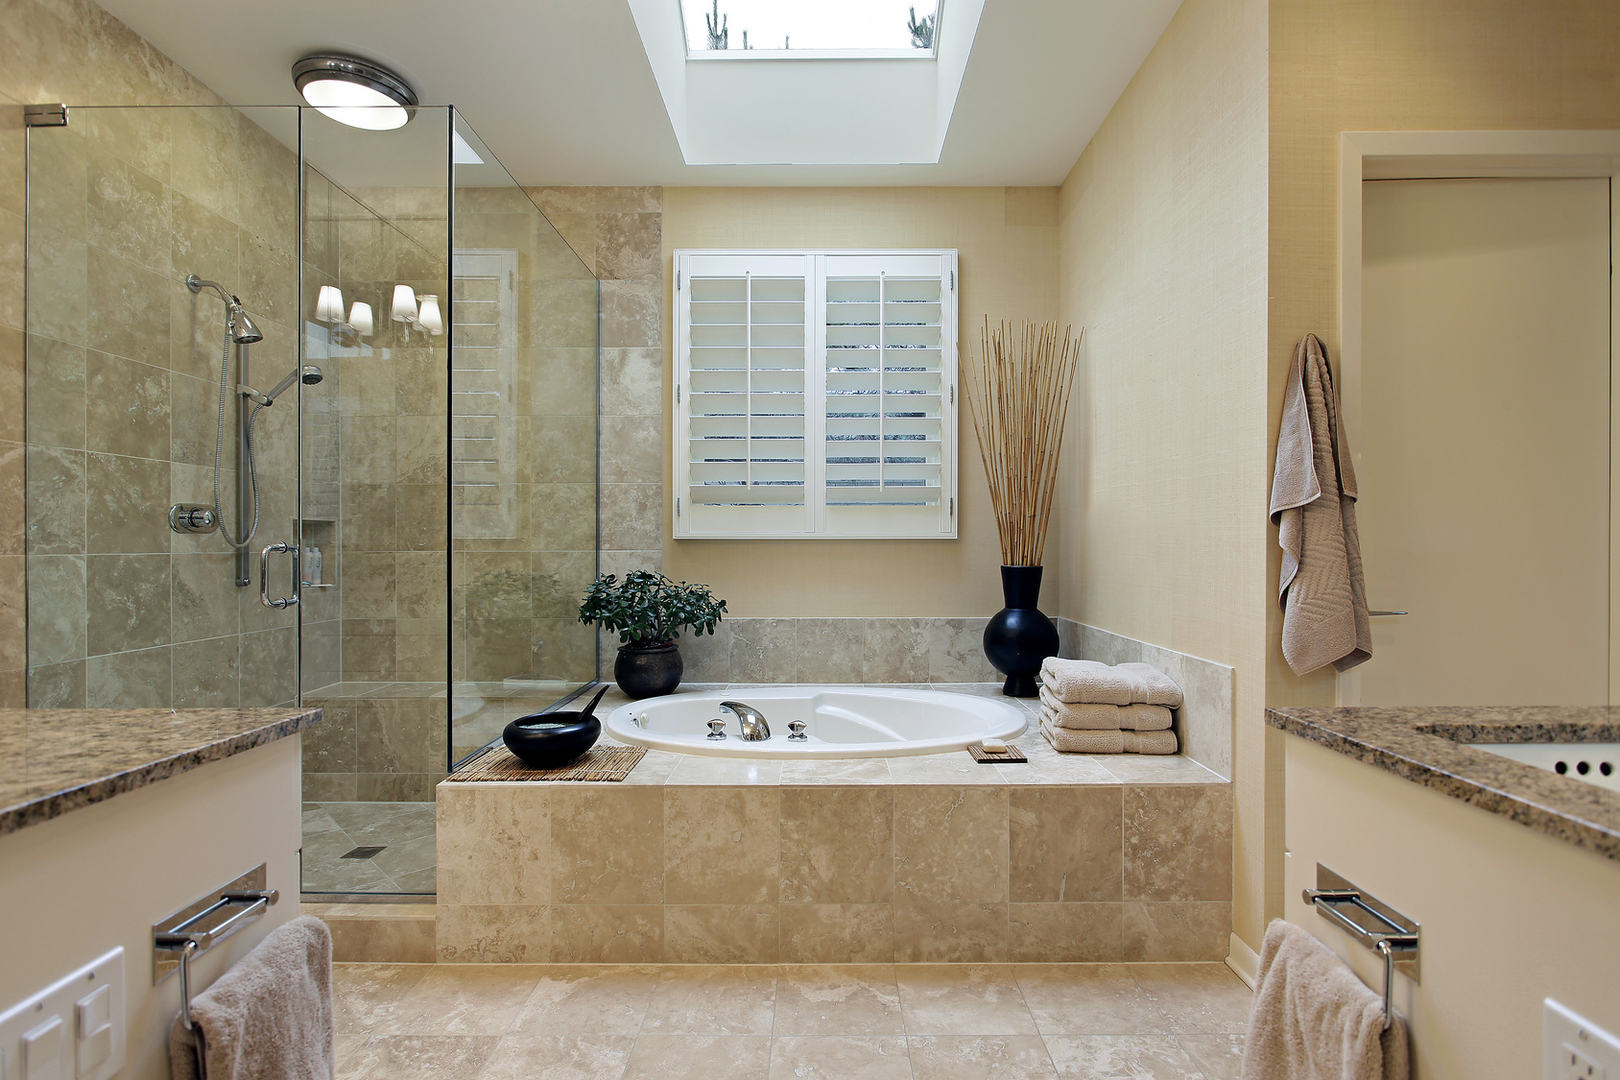 Bathroom Renovations Contractors   Bathroom Remodeling Toronto   Sina  Bathroom Renovations. Bathroom Renovations Contractors   Bathroom Remodeling Toronto